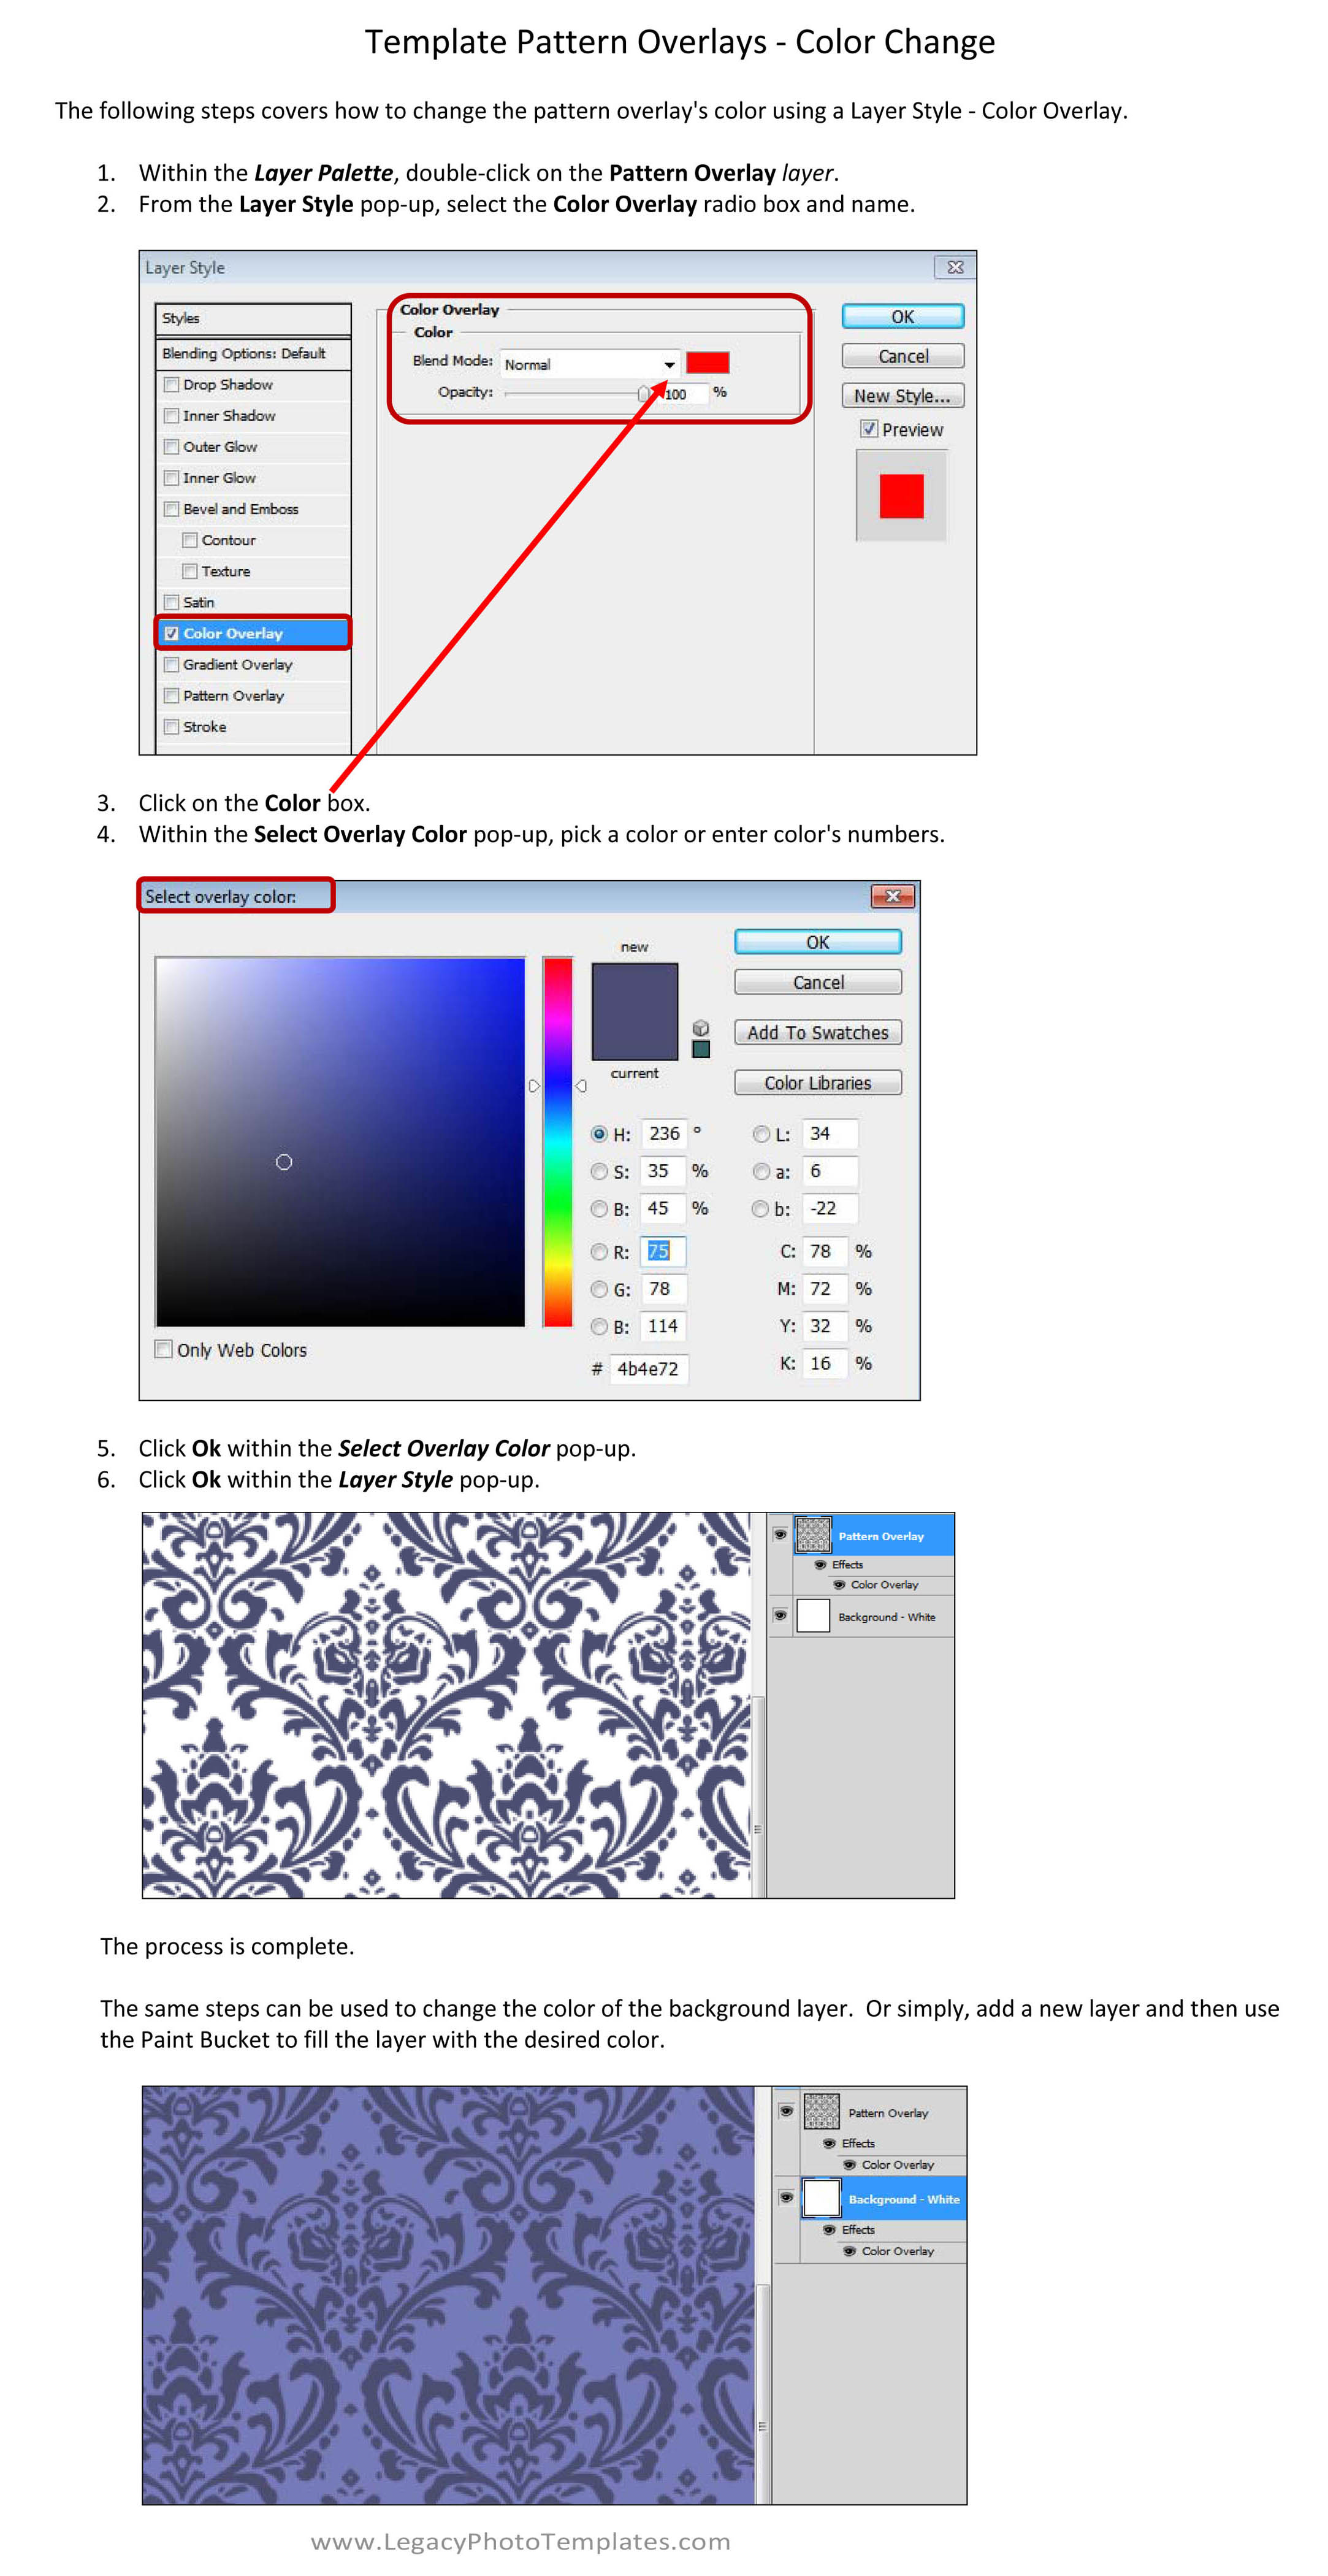 How to change the color of a Pattern Overlay